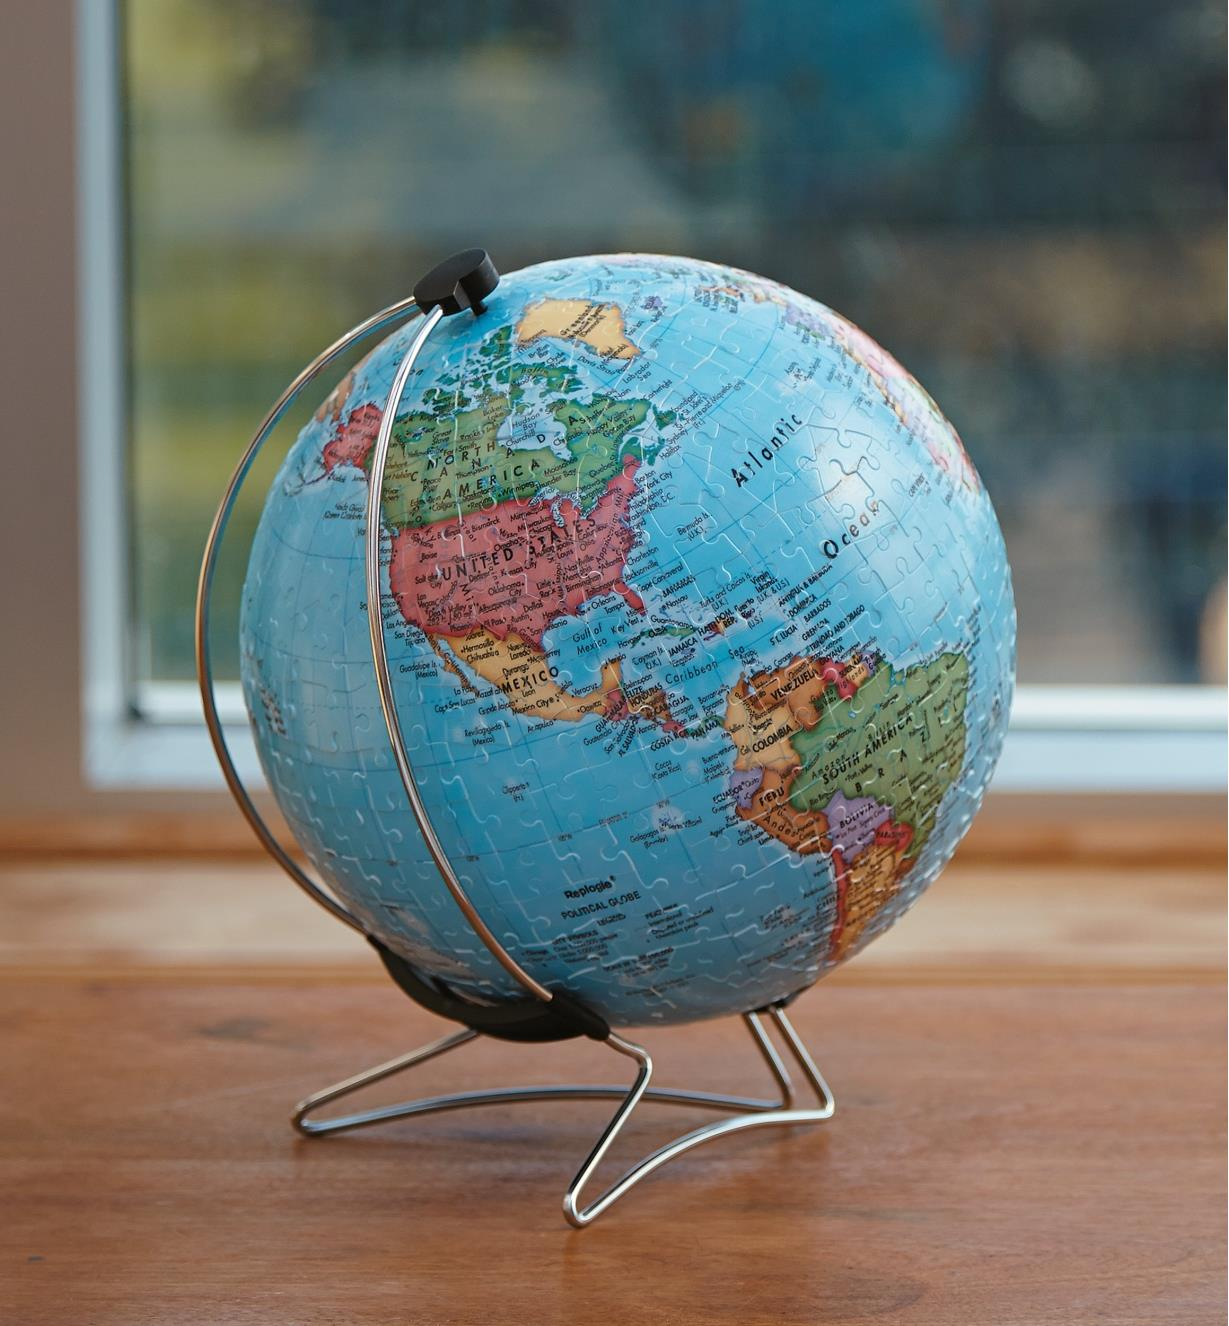 Completed 3D Globe Puzzle sitting by a window